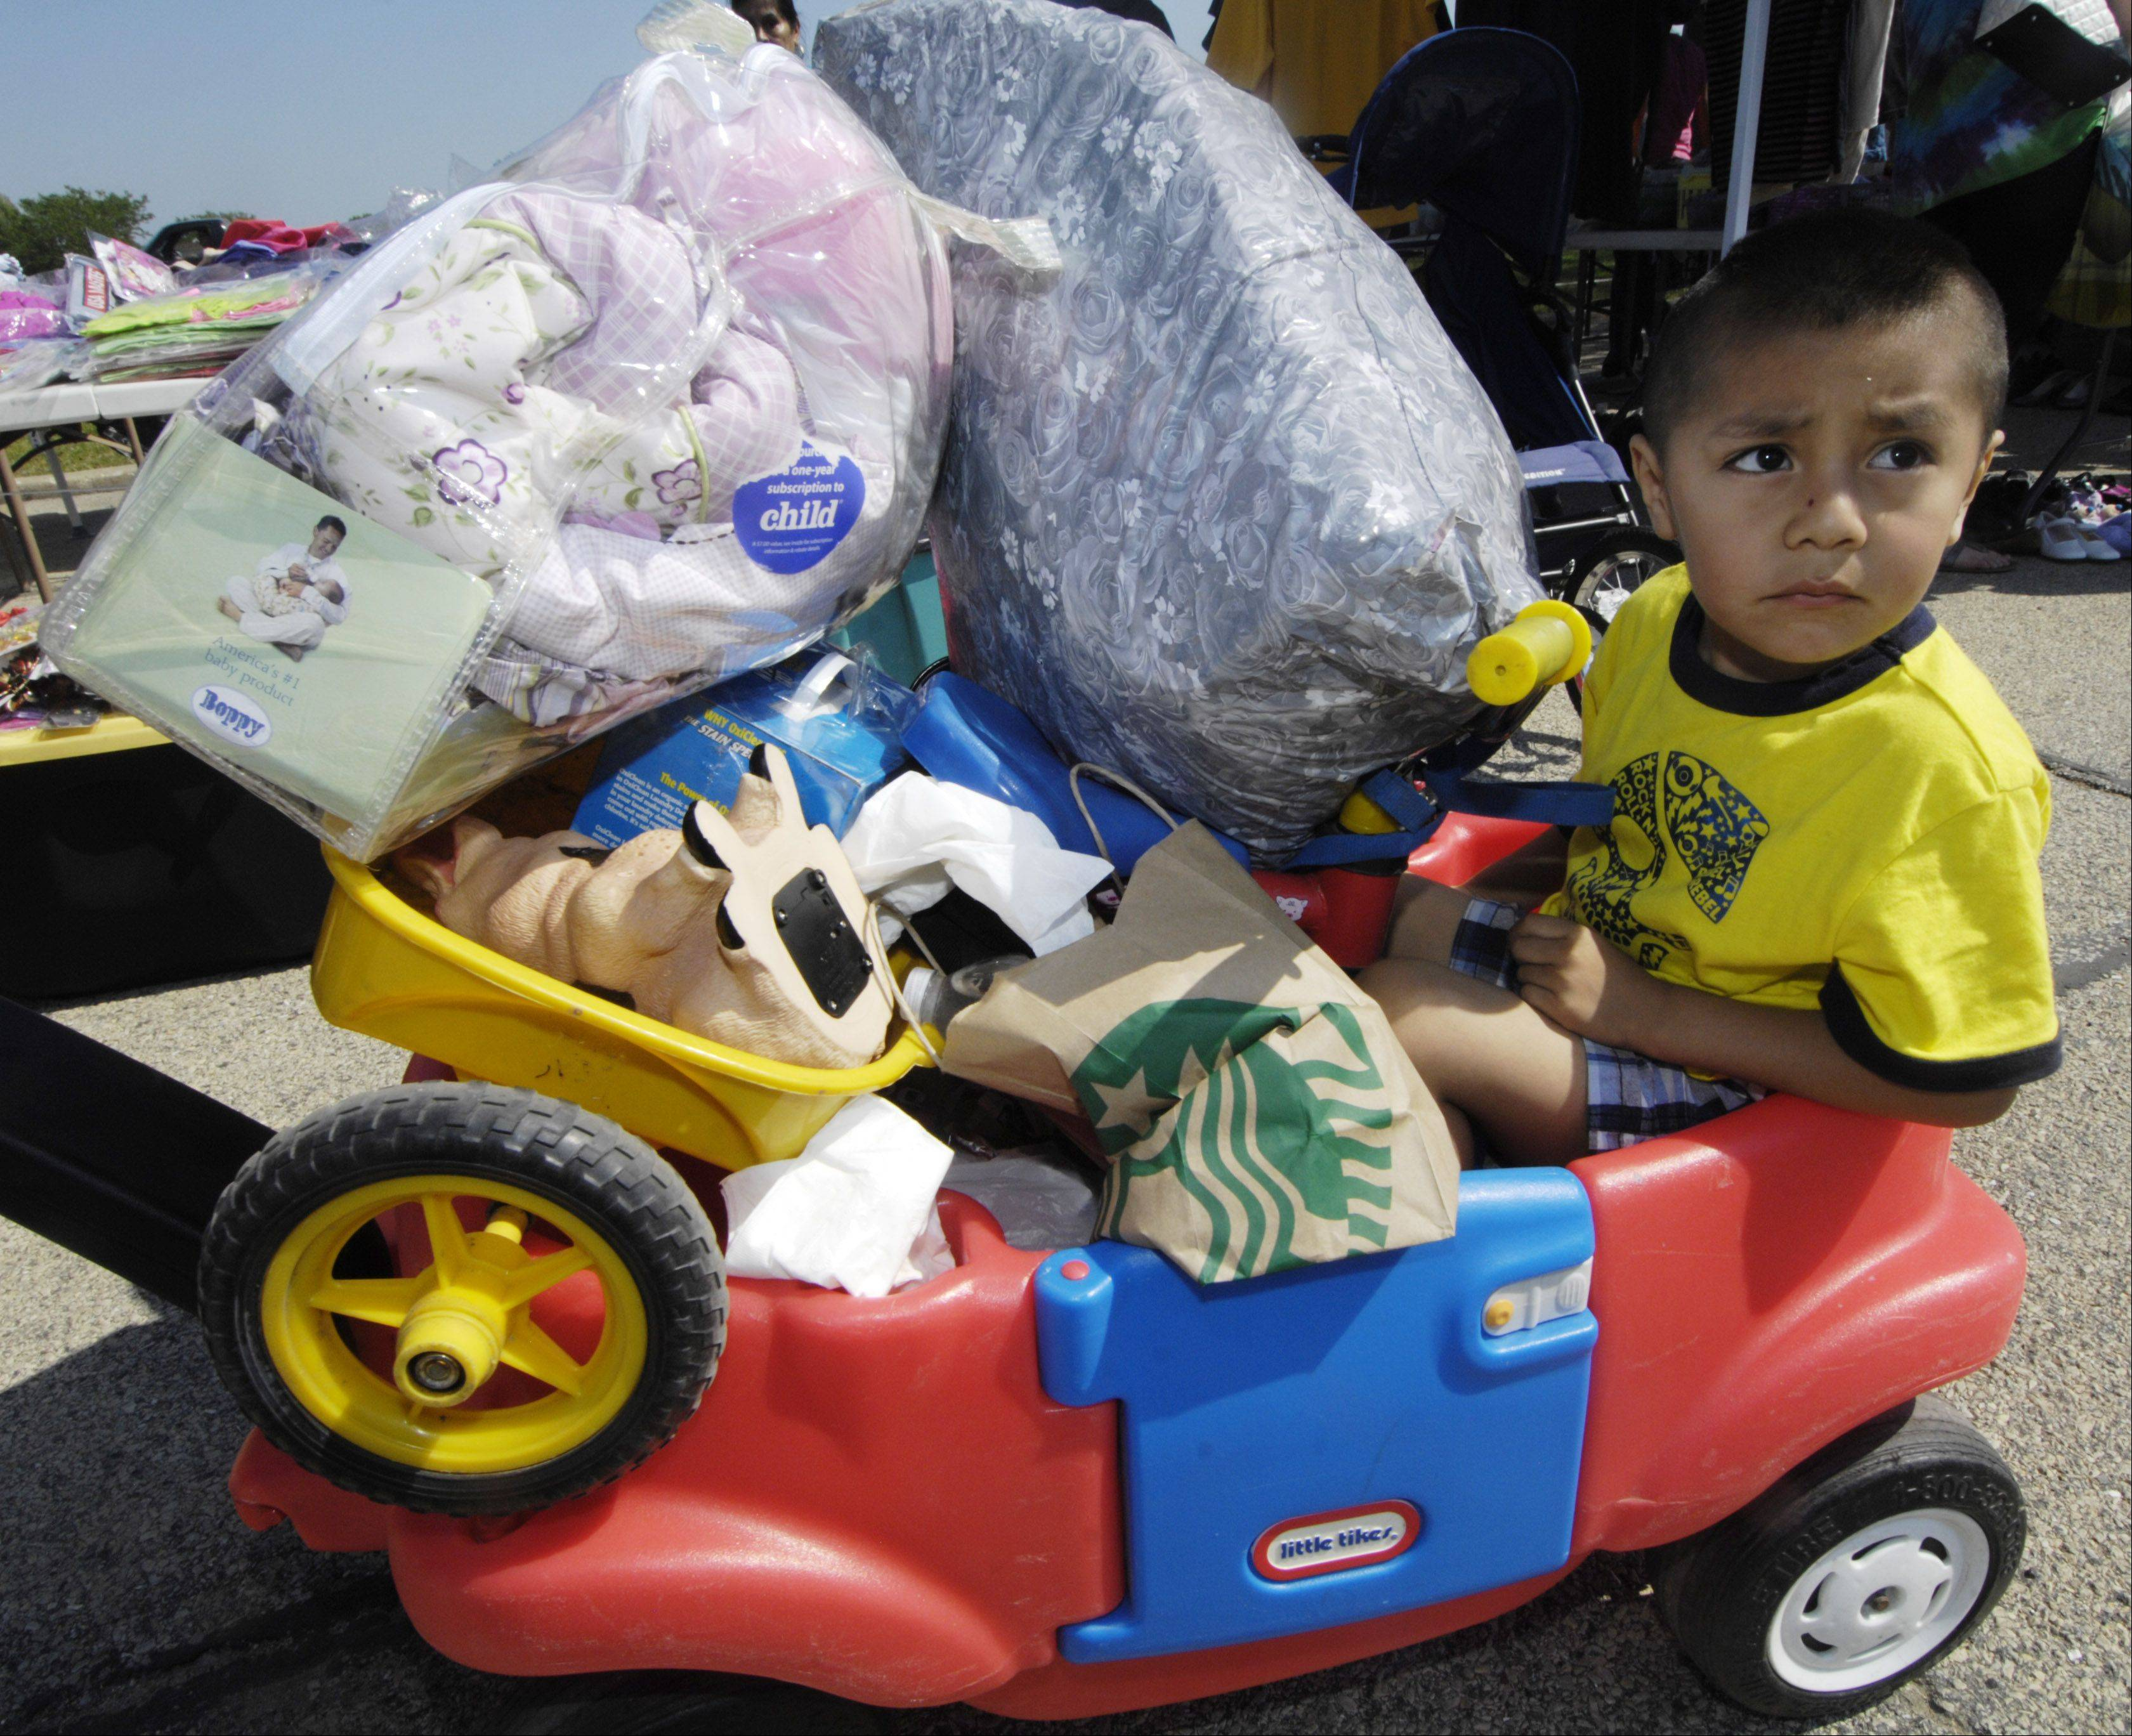 Joshua Tolentino, 4, rides along with his mother's purchases during Hanover Park's Maxwell Street garage sale held at the commuter parking lot Saturday.